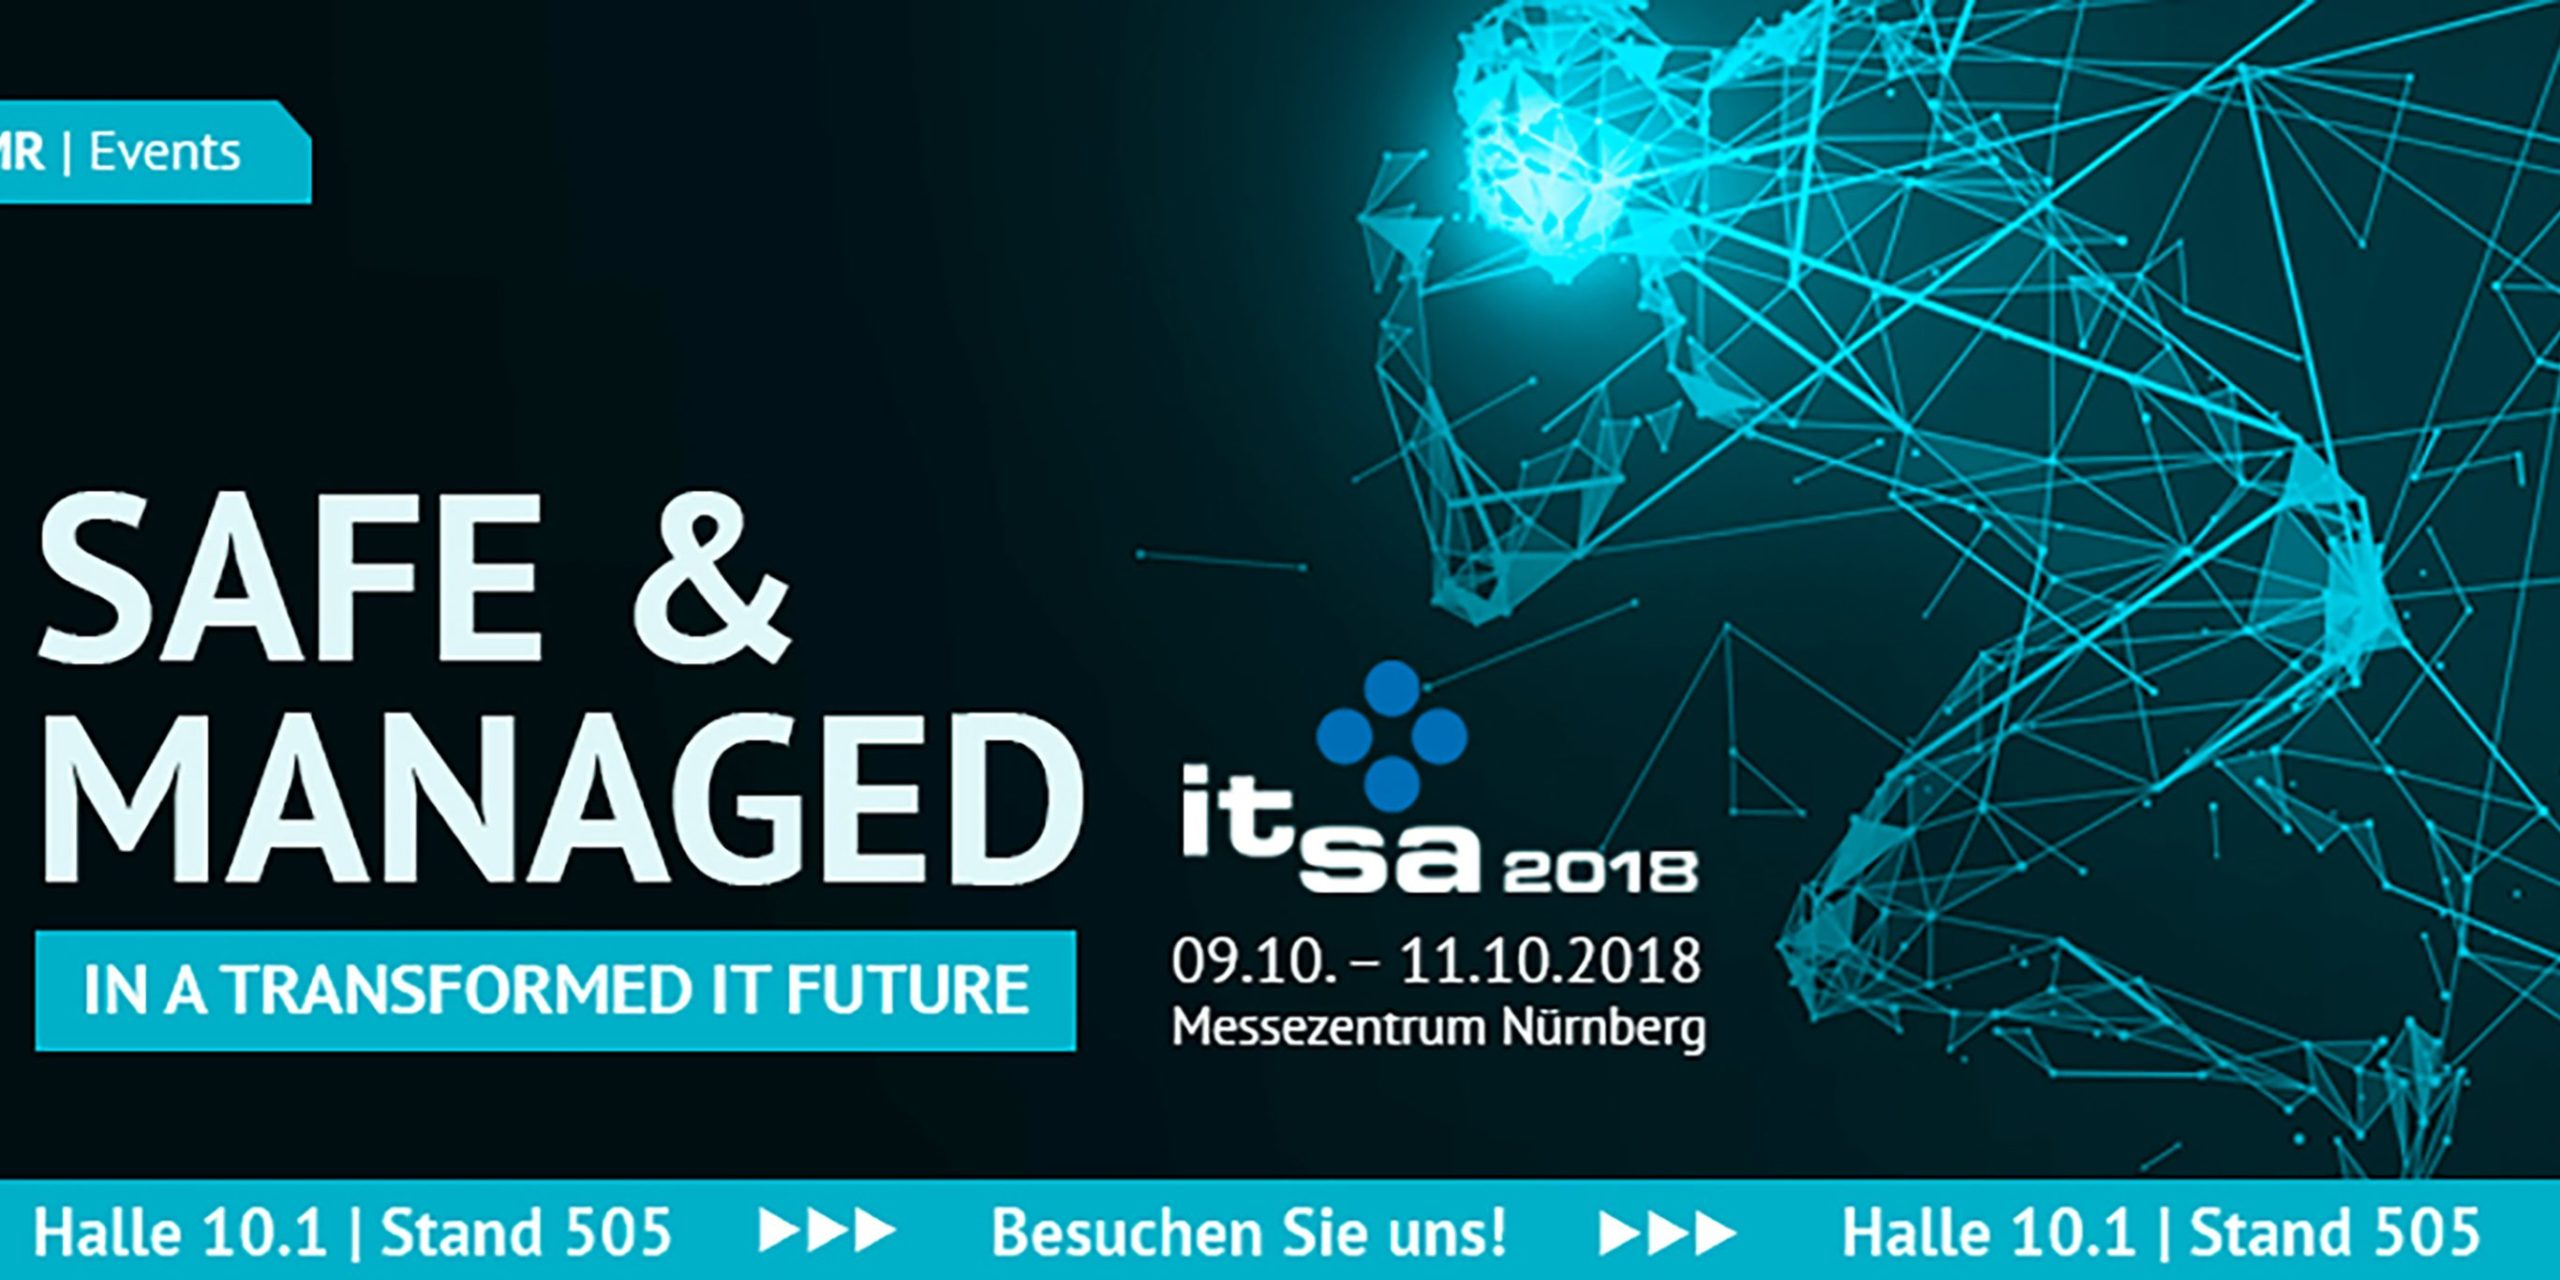 Headerbild Newsletter itsa 2018